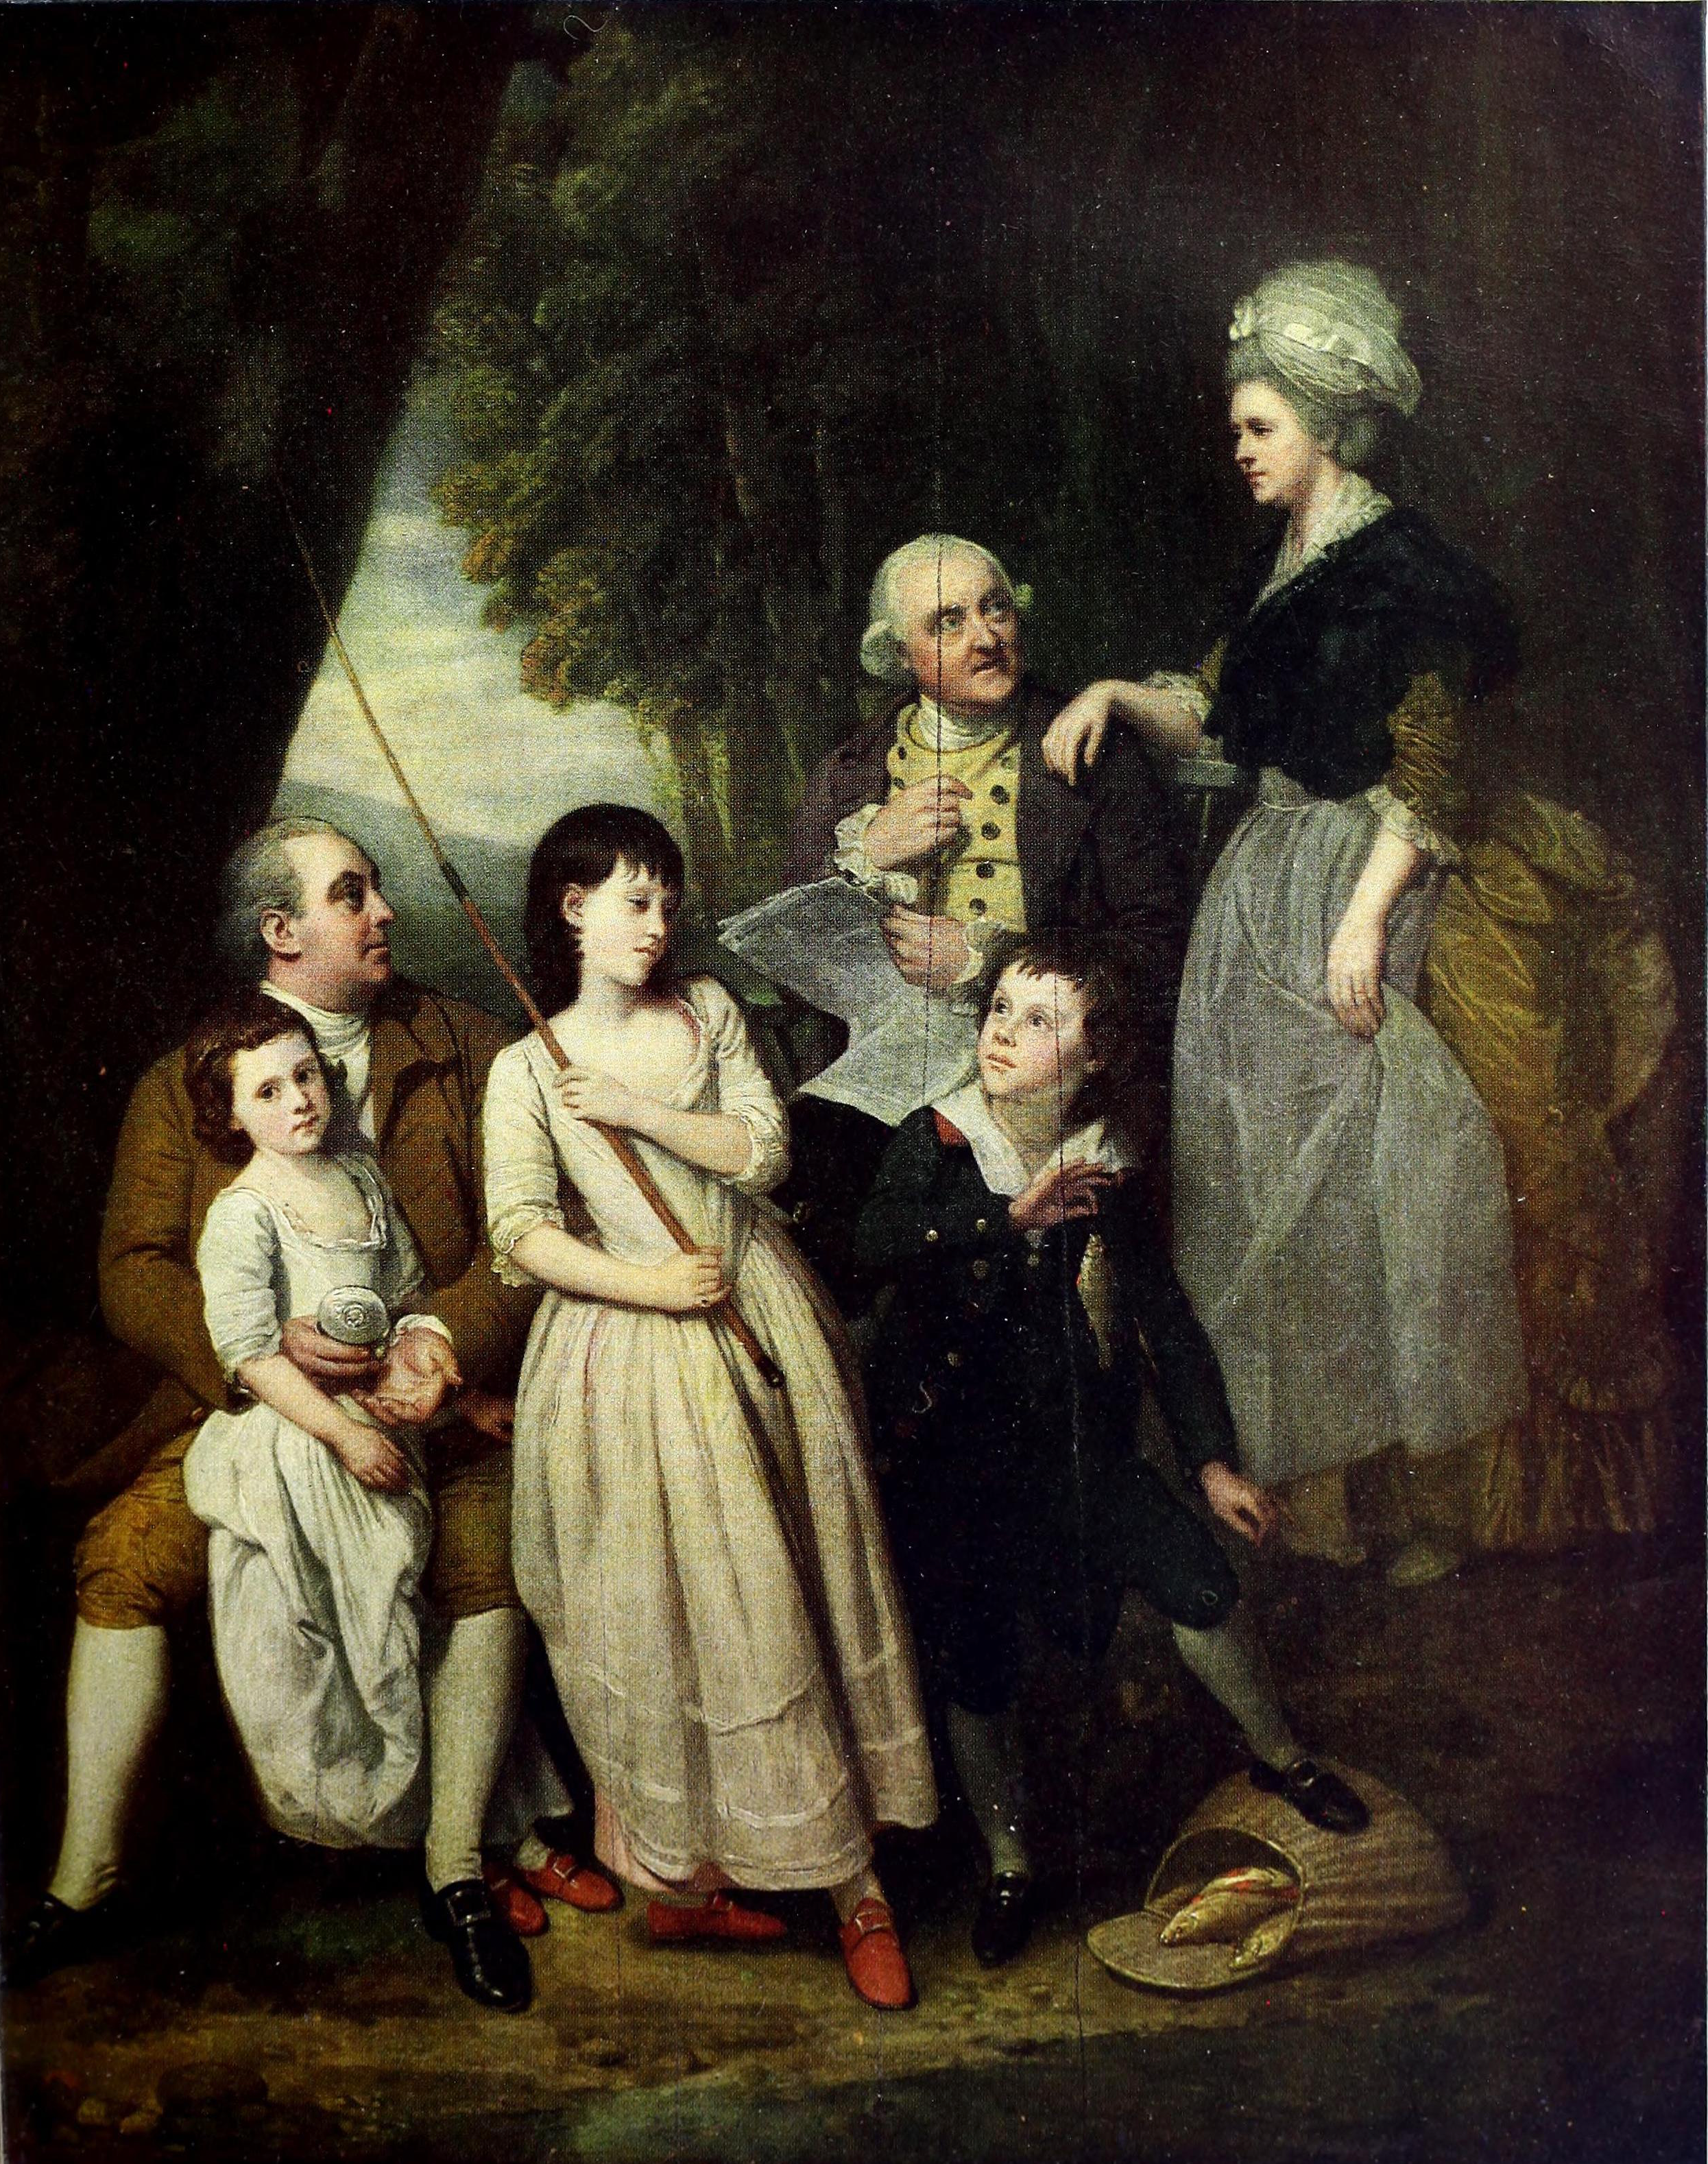 Mr and Mrs Bourke of Carshalton, John Zoffany R.A. Artist, Betsy Bourke, Elizabeth Bourke, Vice Regal Lady, Governor's Wife, St. John's Cemetery Project, Old Parramattans, Old Government House, Parramatta, St. John's Cemetery, Parramatta, Honeywood Museum